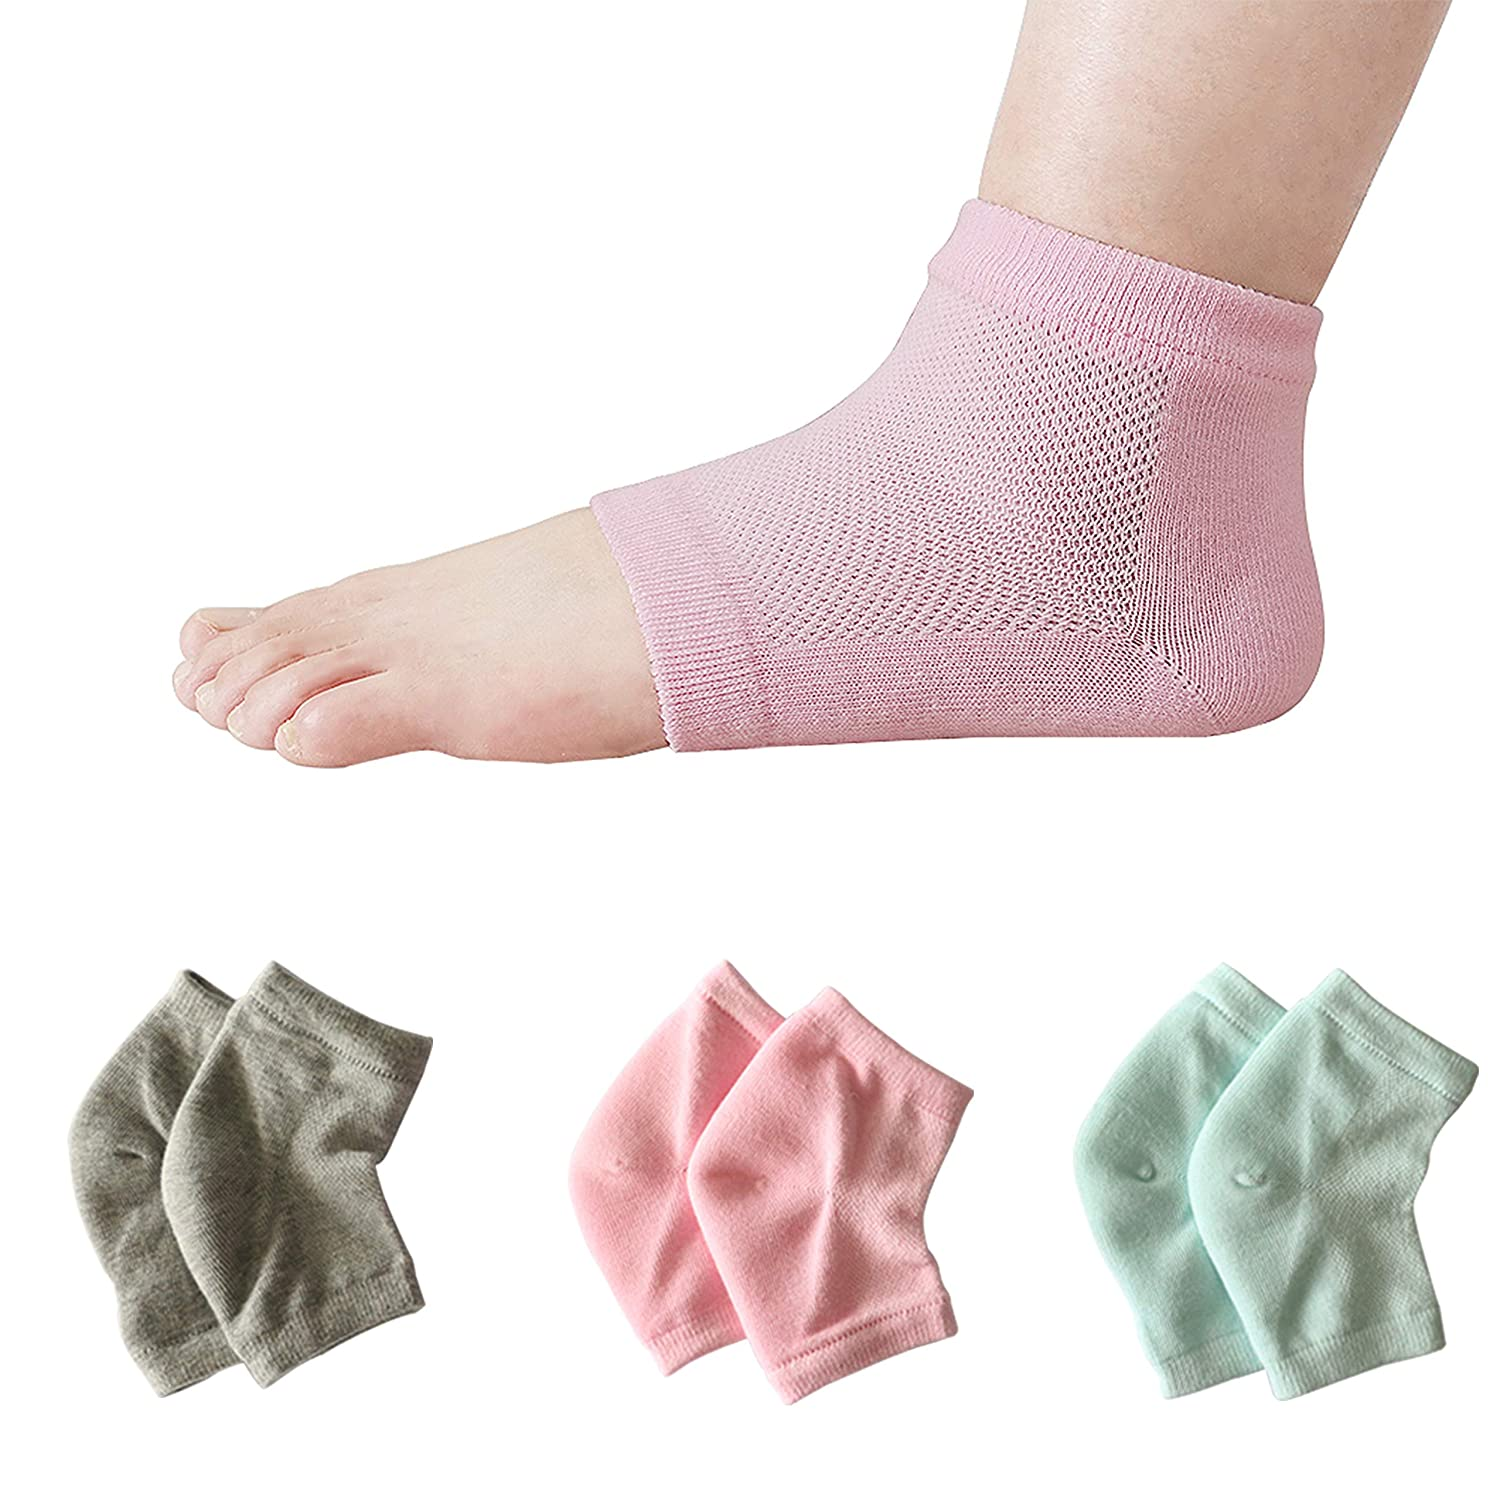 Vented Moisturizing Gel Heel Socks, Smeala Day Night Open Care Toed Breathable Recovery Cotton Socks, Silicone Gel to Heal Dry Cracked Heels and Soften Repair Feet (3 Pairs)